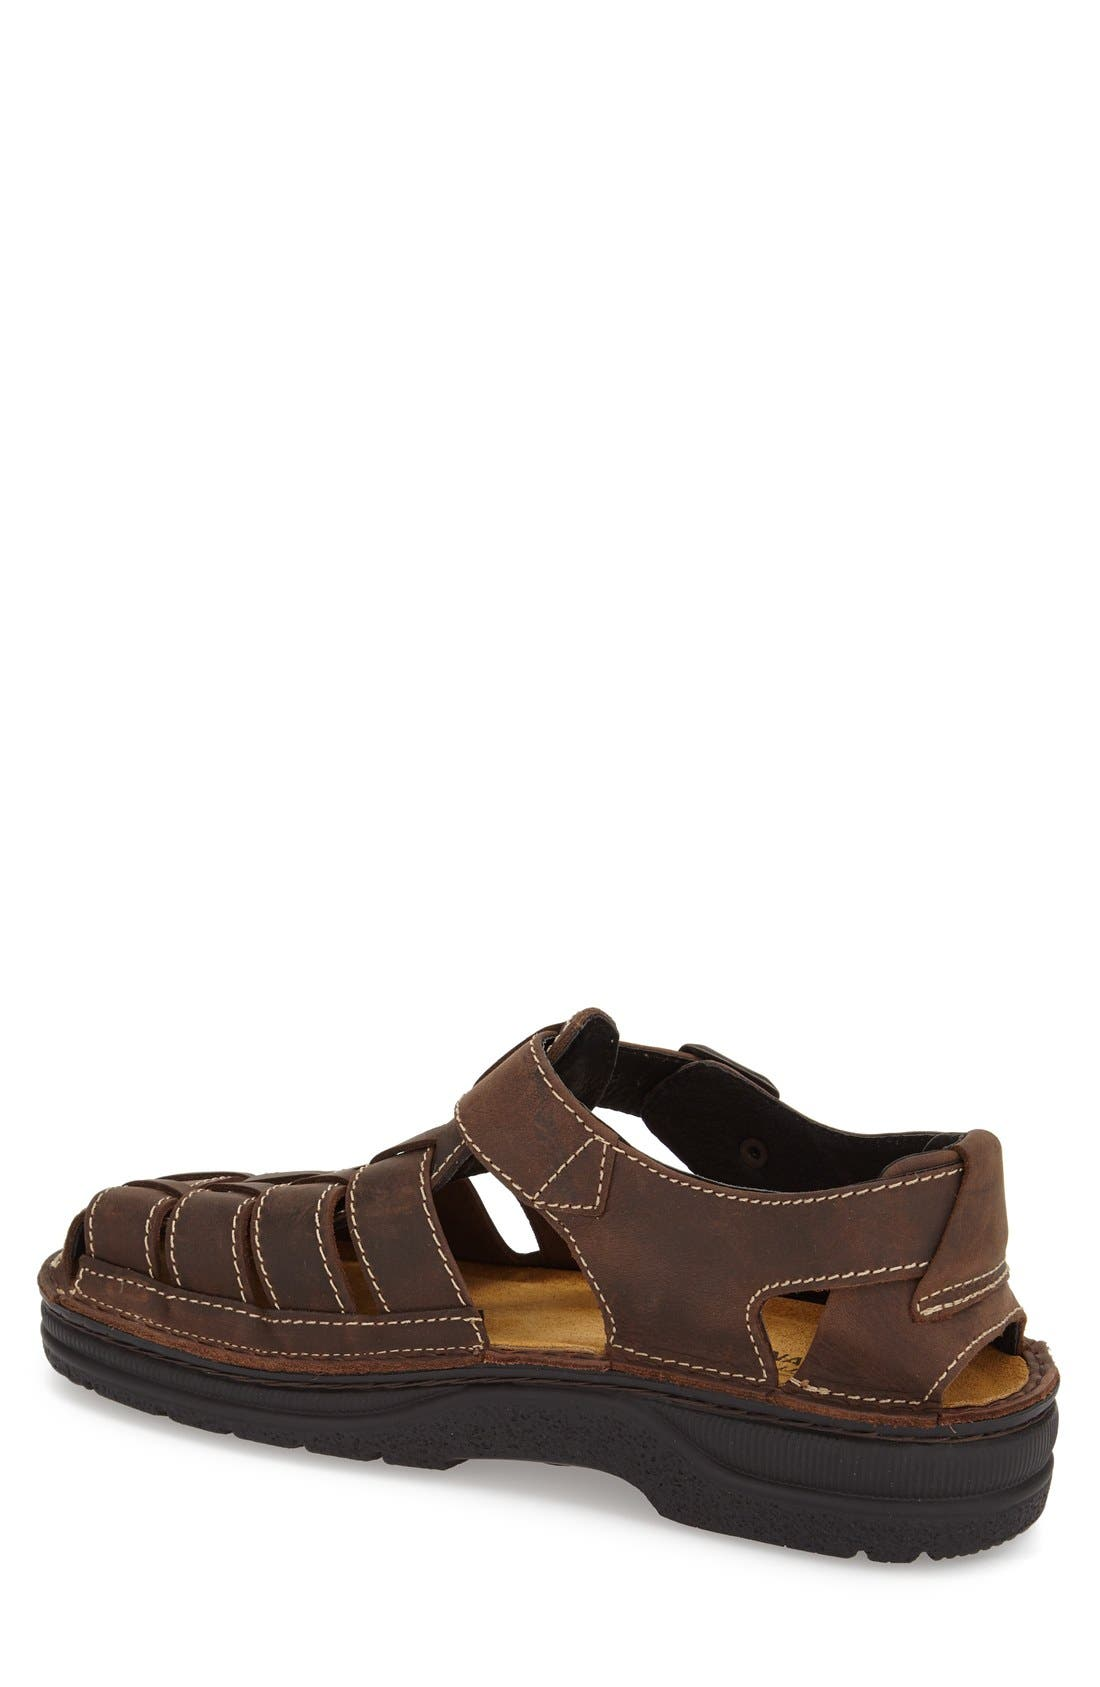 Alternate Image 2  - Naot Julius Fisherman Sandal (Men)